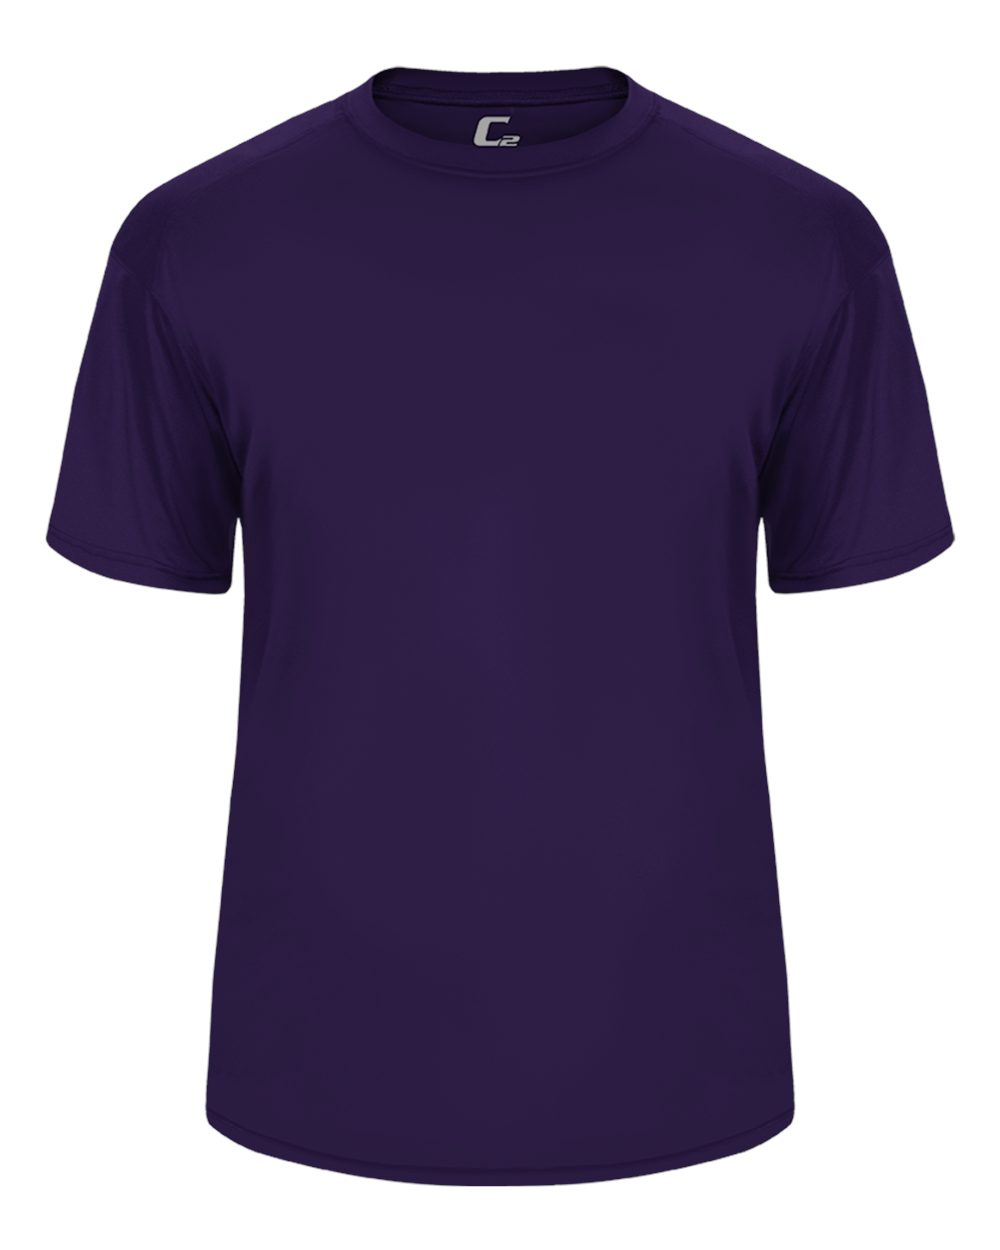 C2  Performance Yth Tee - Purple